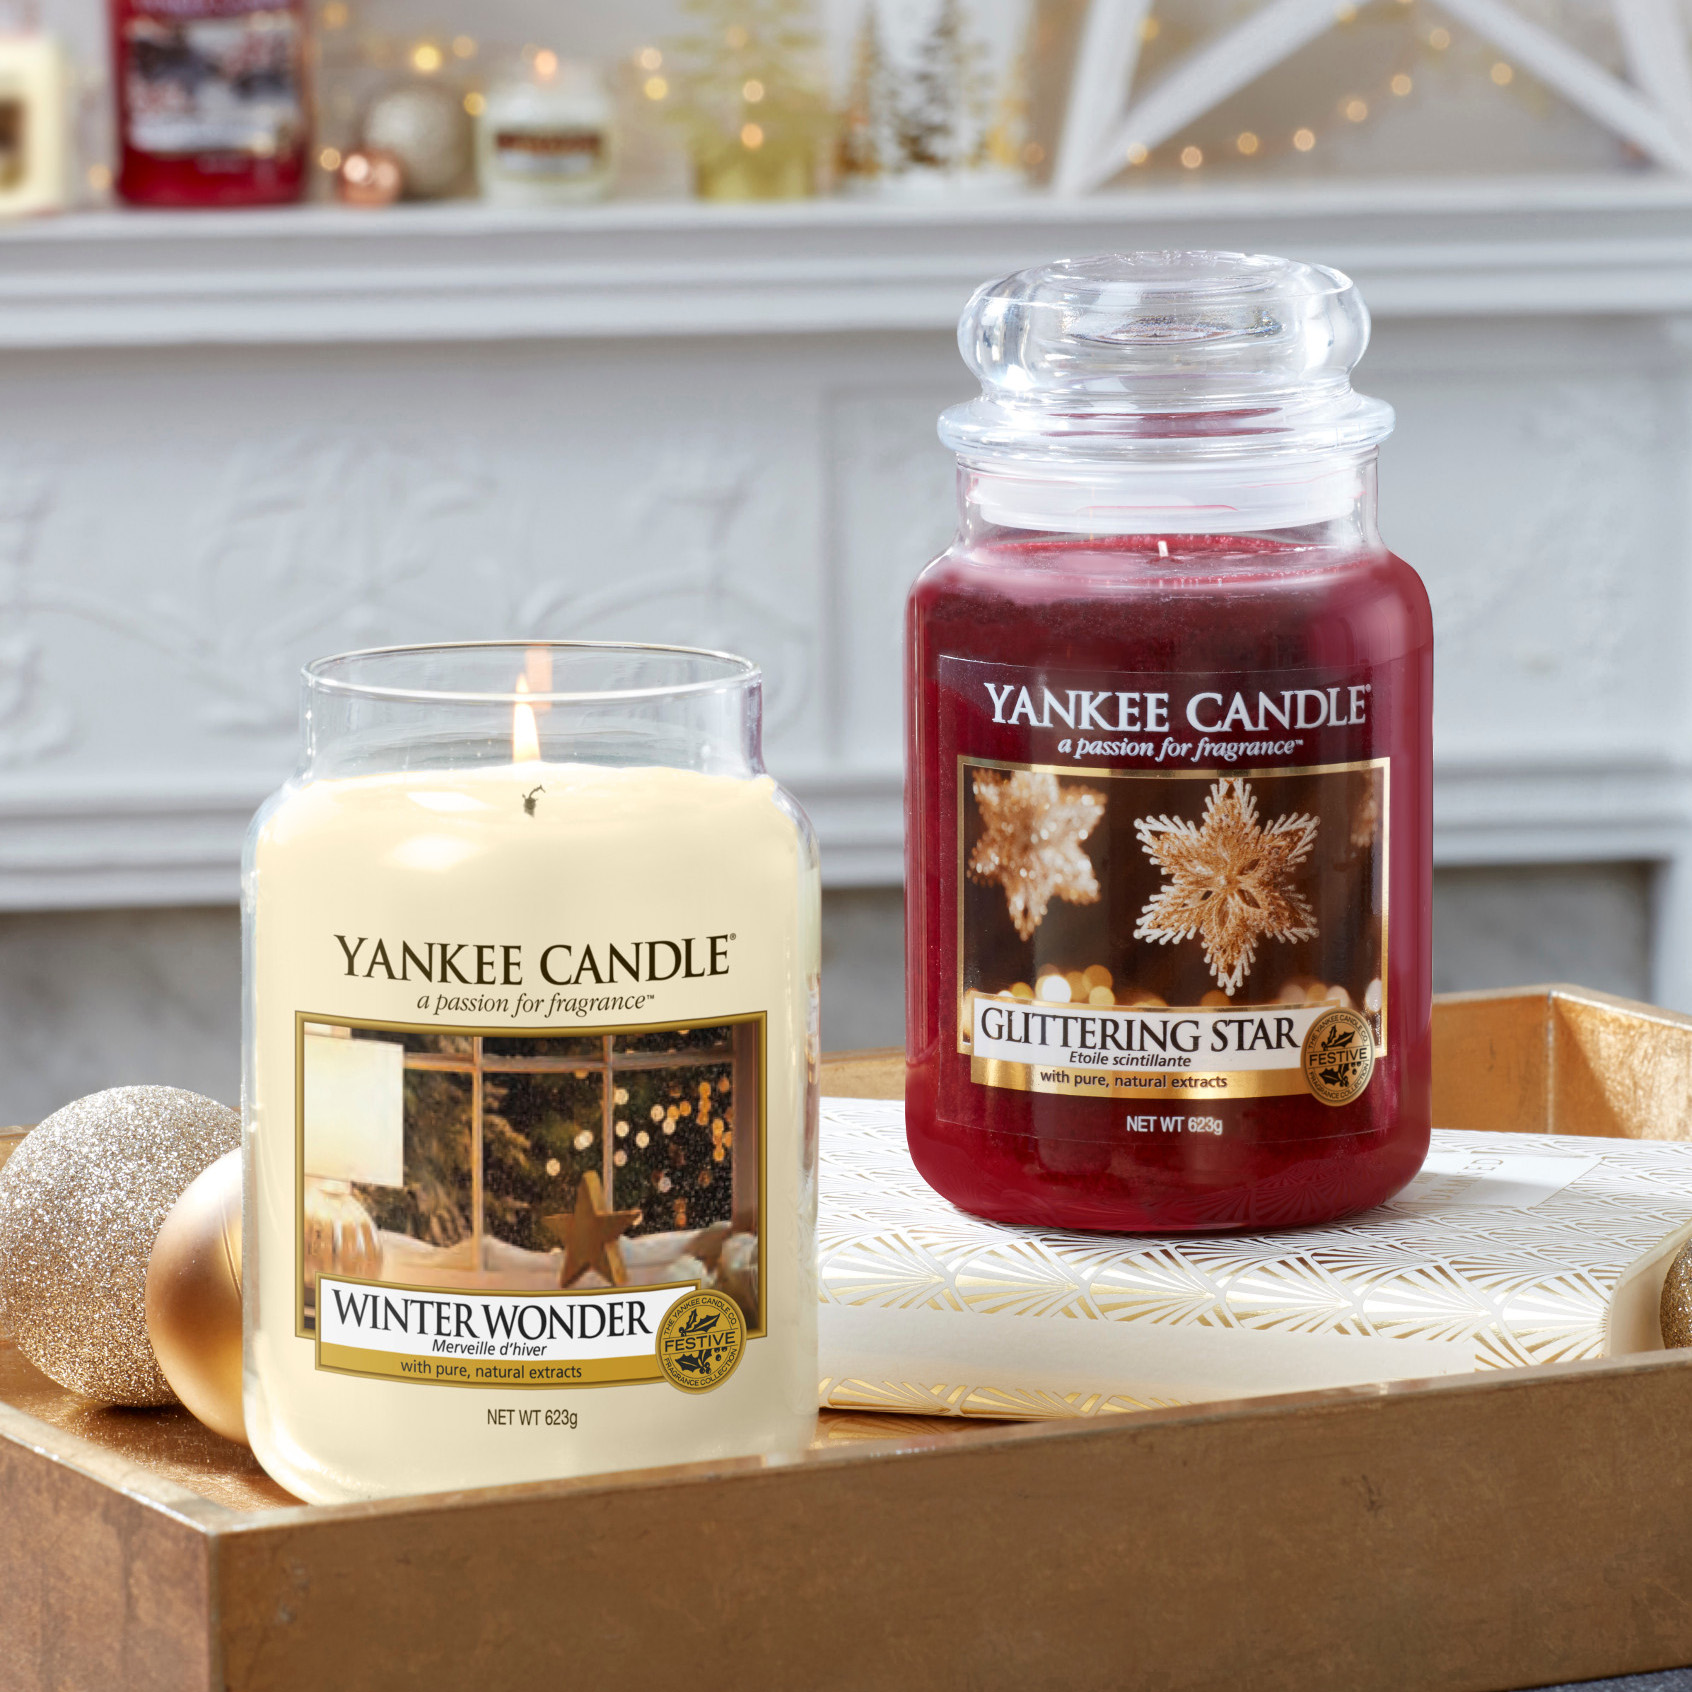 nouveaux parfums noel yankee candle sparkle holiday winter wonderland glittering star